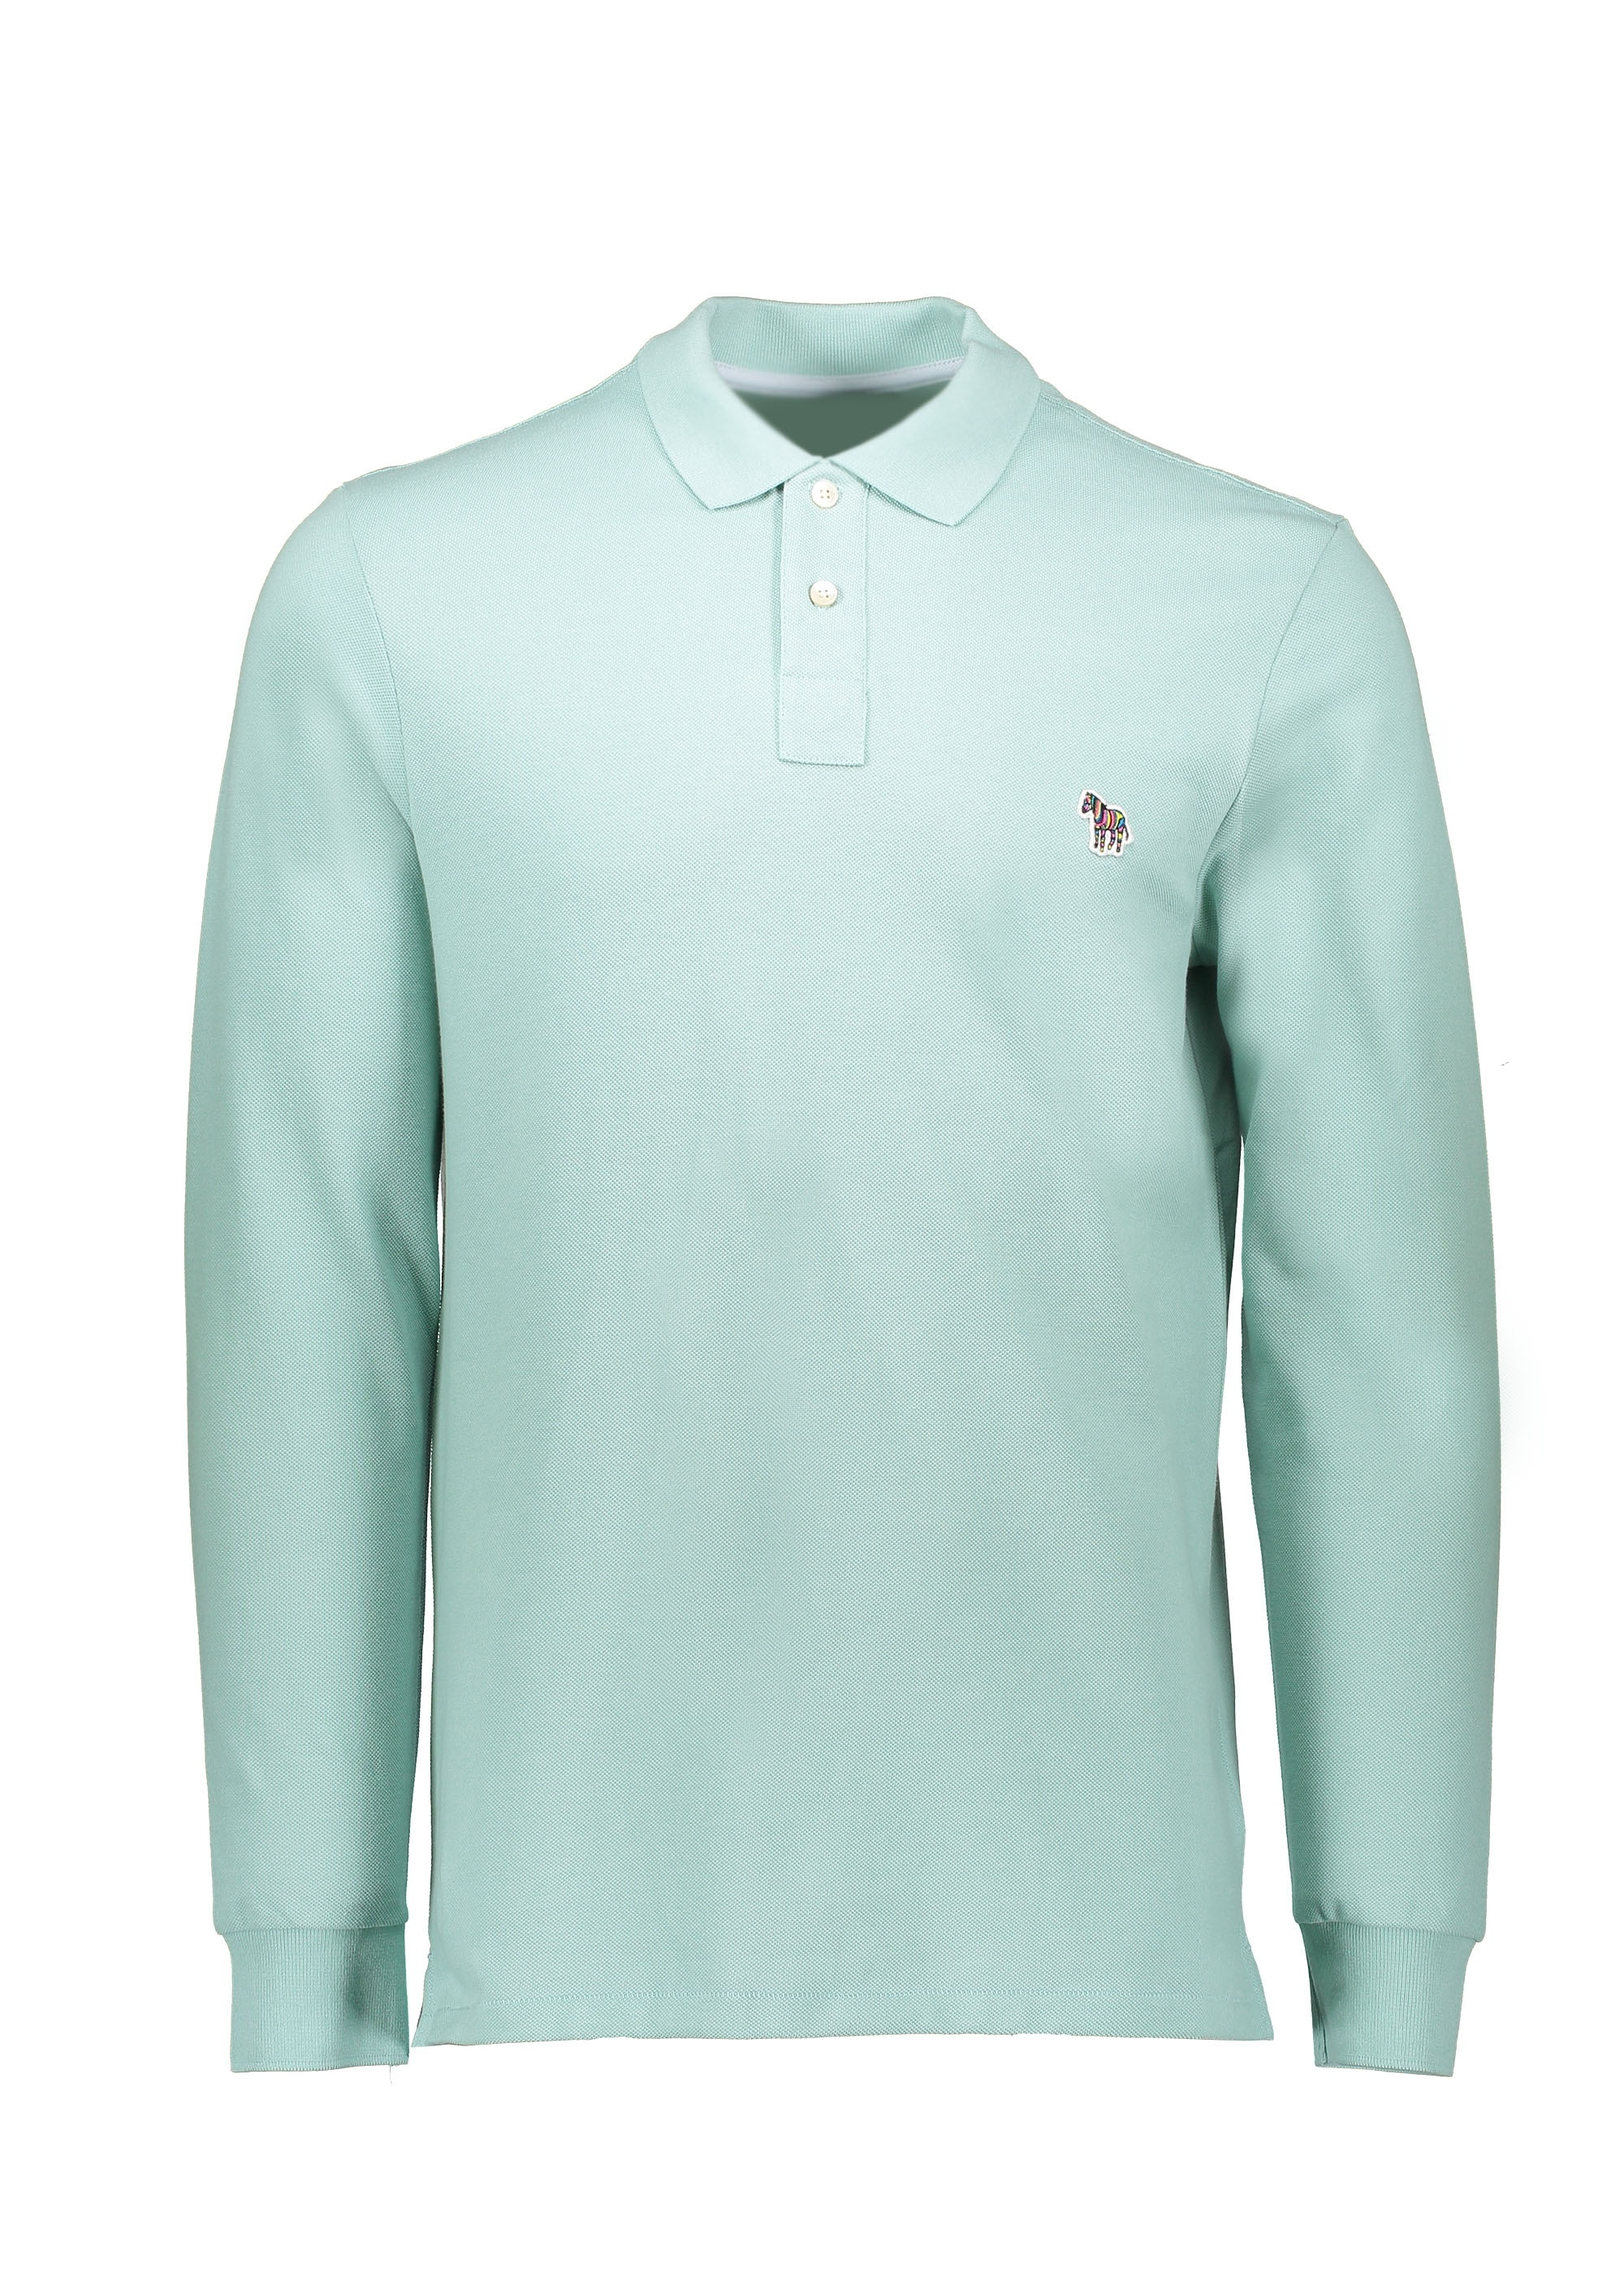 47dc504e Paul Smith LS Polo - Green - Polo Shirts from Triads UK